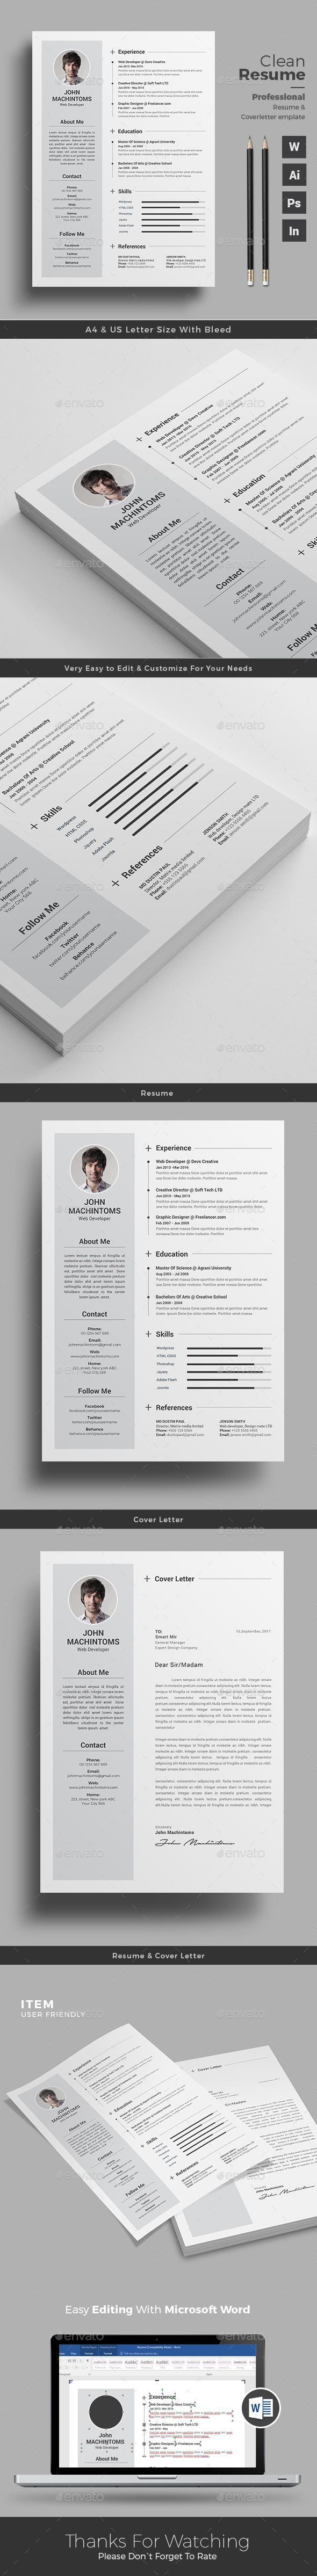 Resume Resume Words Free Cover Letter And Professional Resume - Resume Size Letter Or A4